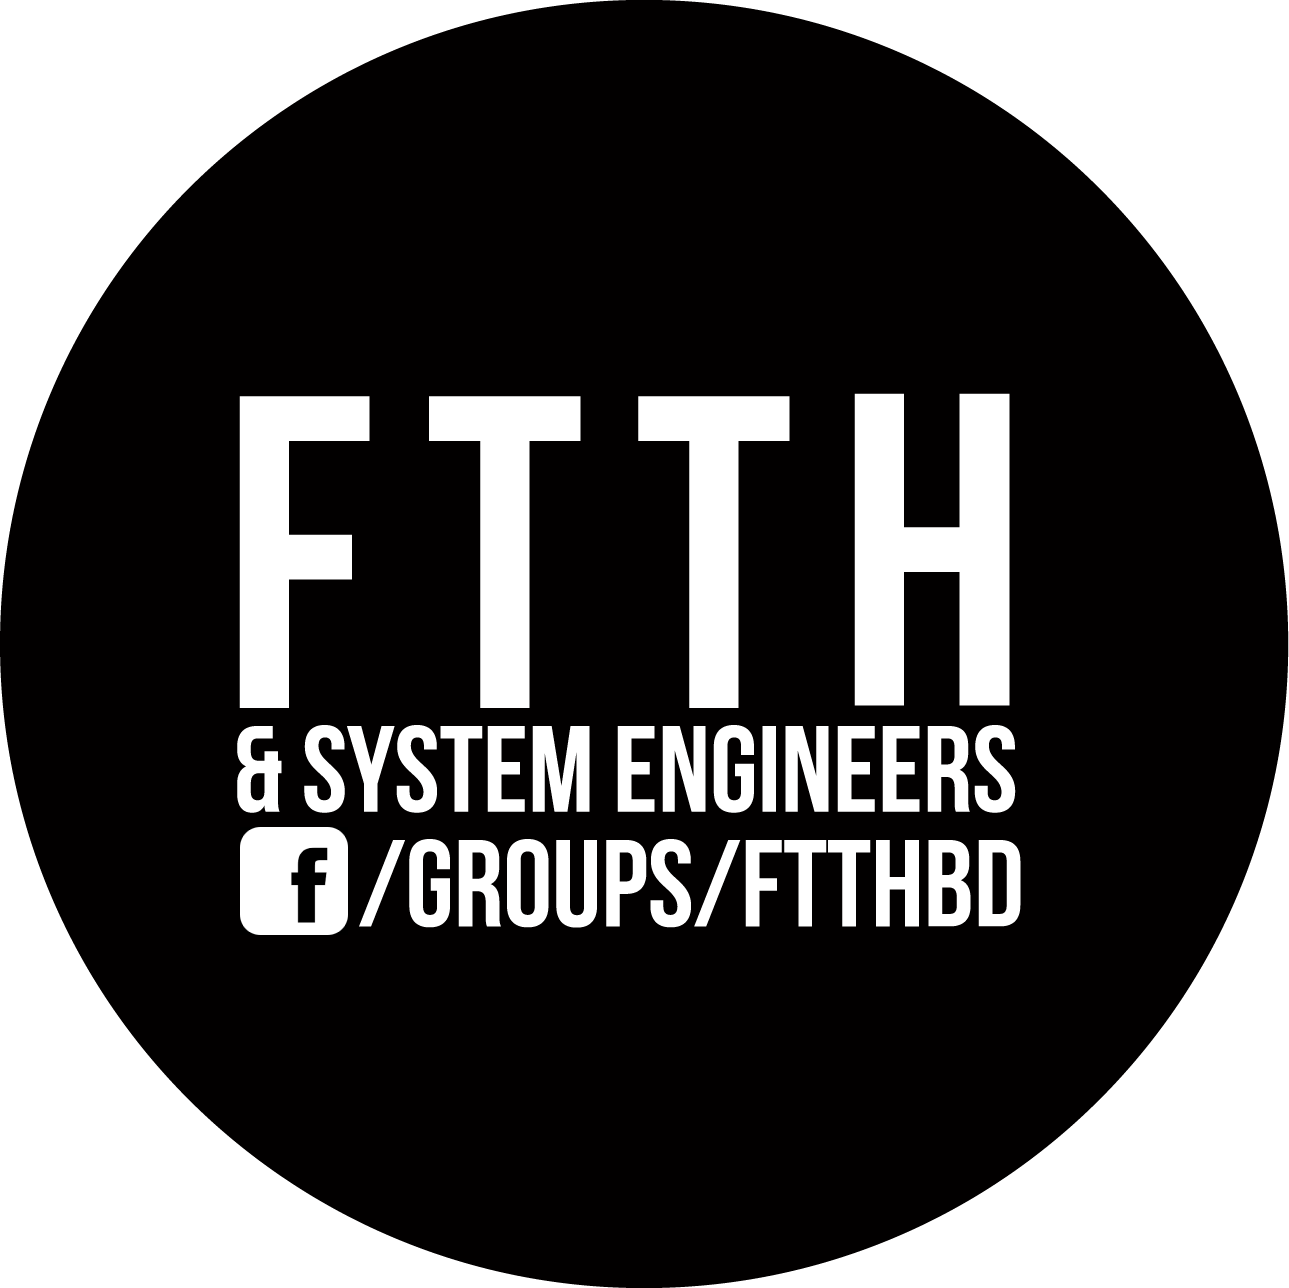 FTTHBD group Bangladesh